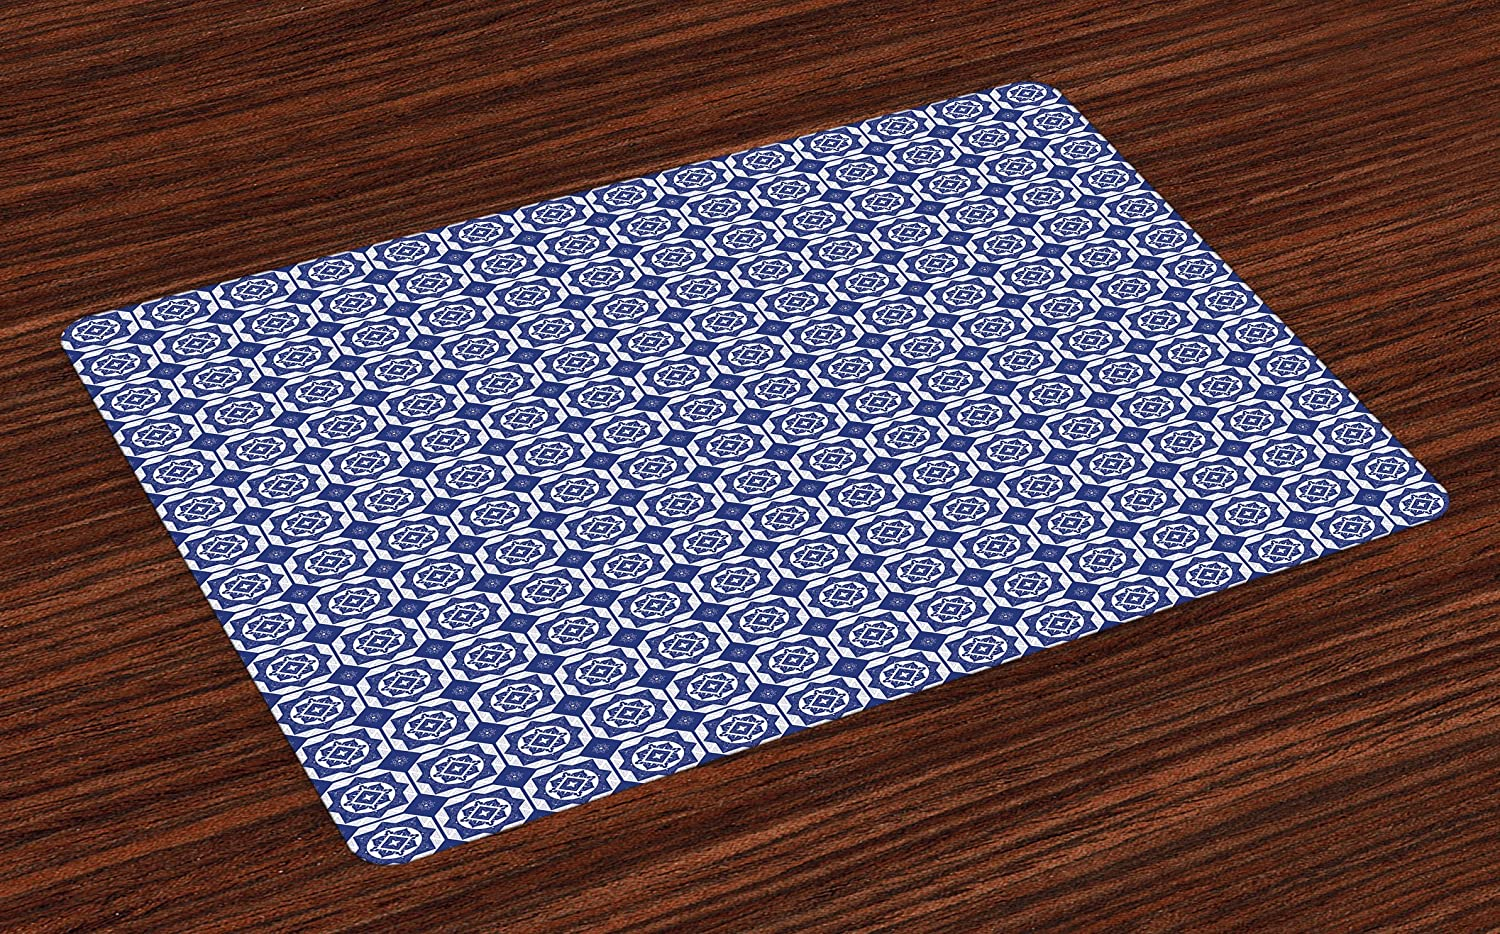 Ambesonne Dutch Place Mats Set of 4, Delft Style Geometric Pattern with Rhombuses and Hexagons Holland Design, Washable Fabric Placemats for Dining Room Kitchen Table Decor, Navy Blue and White